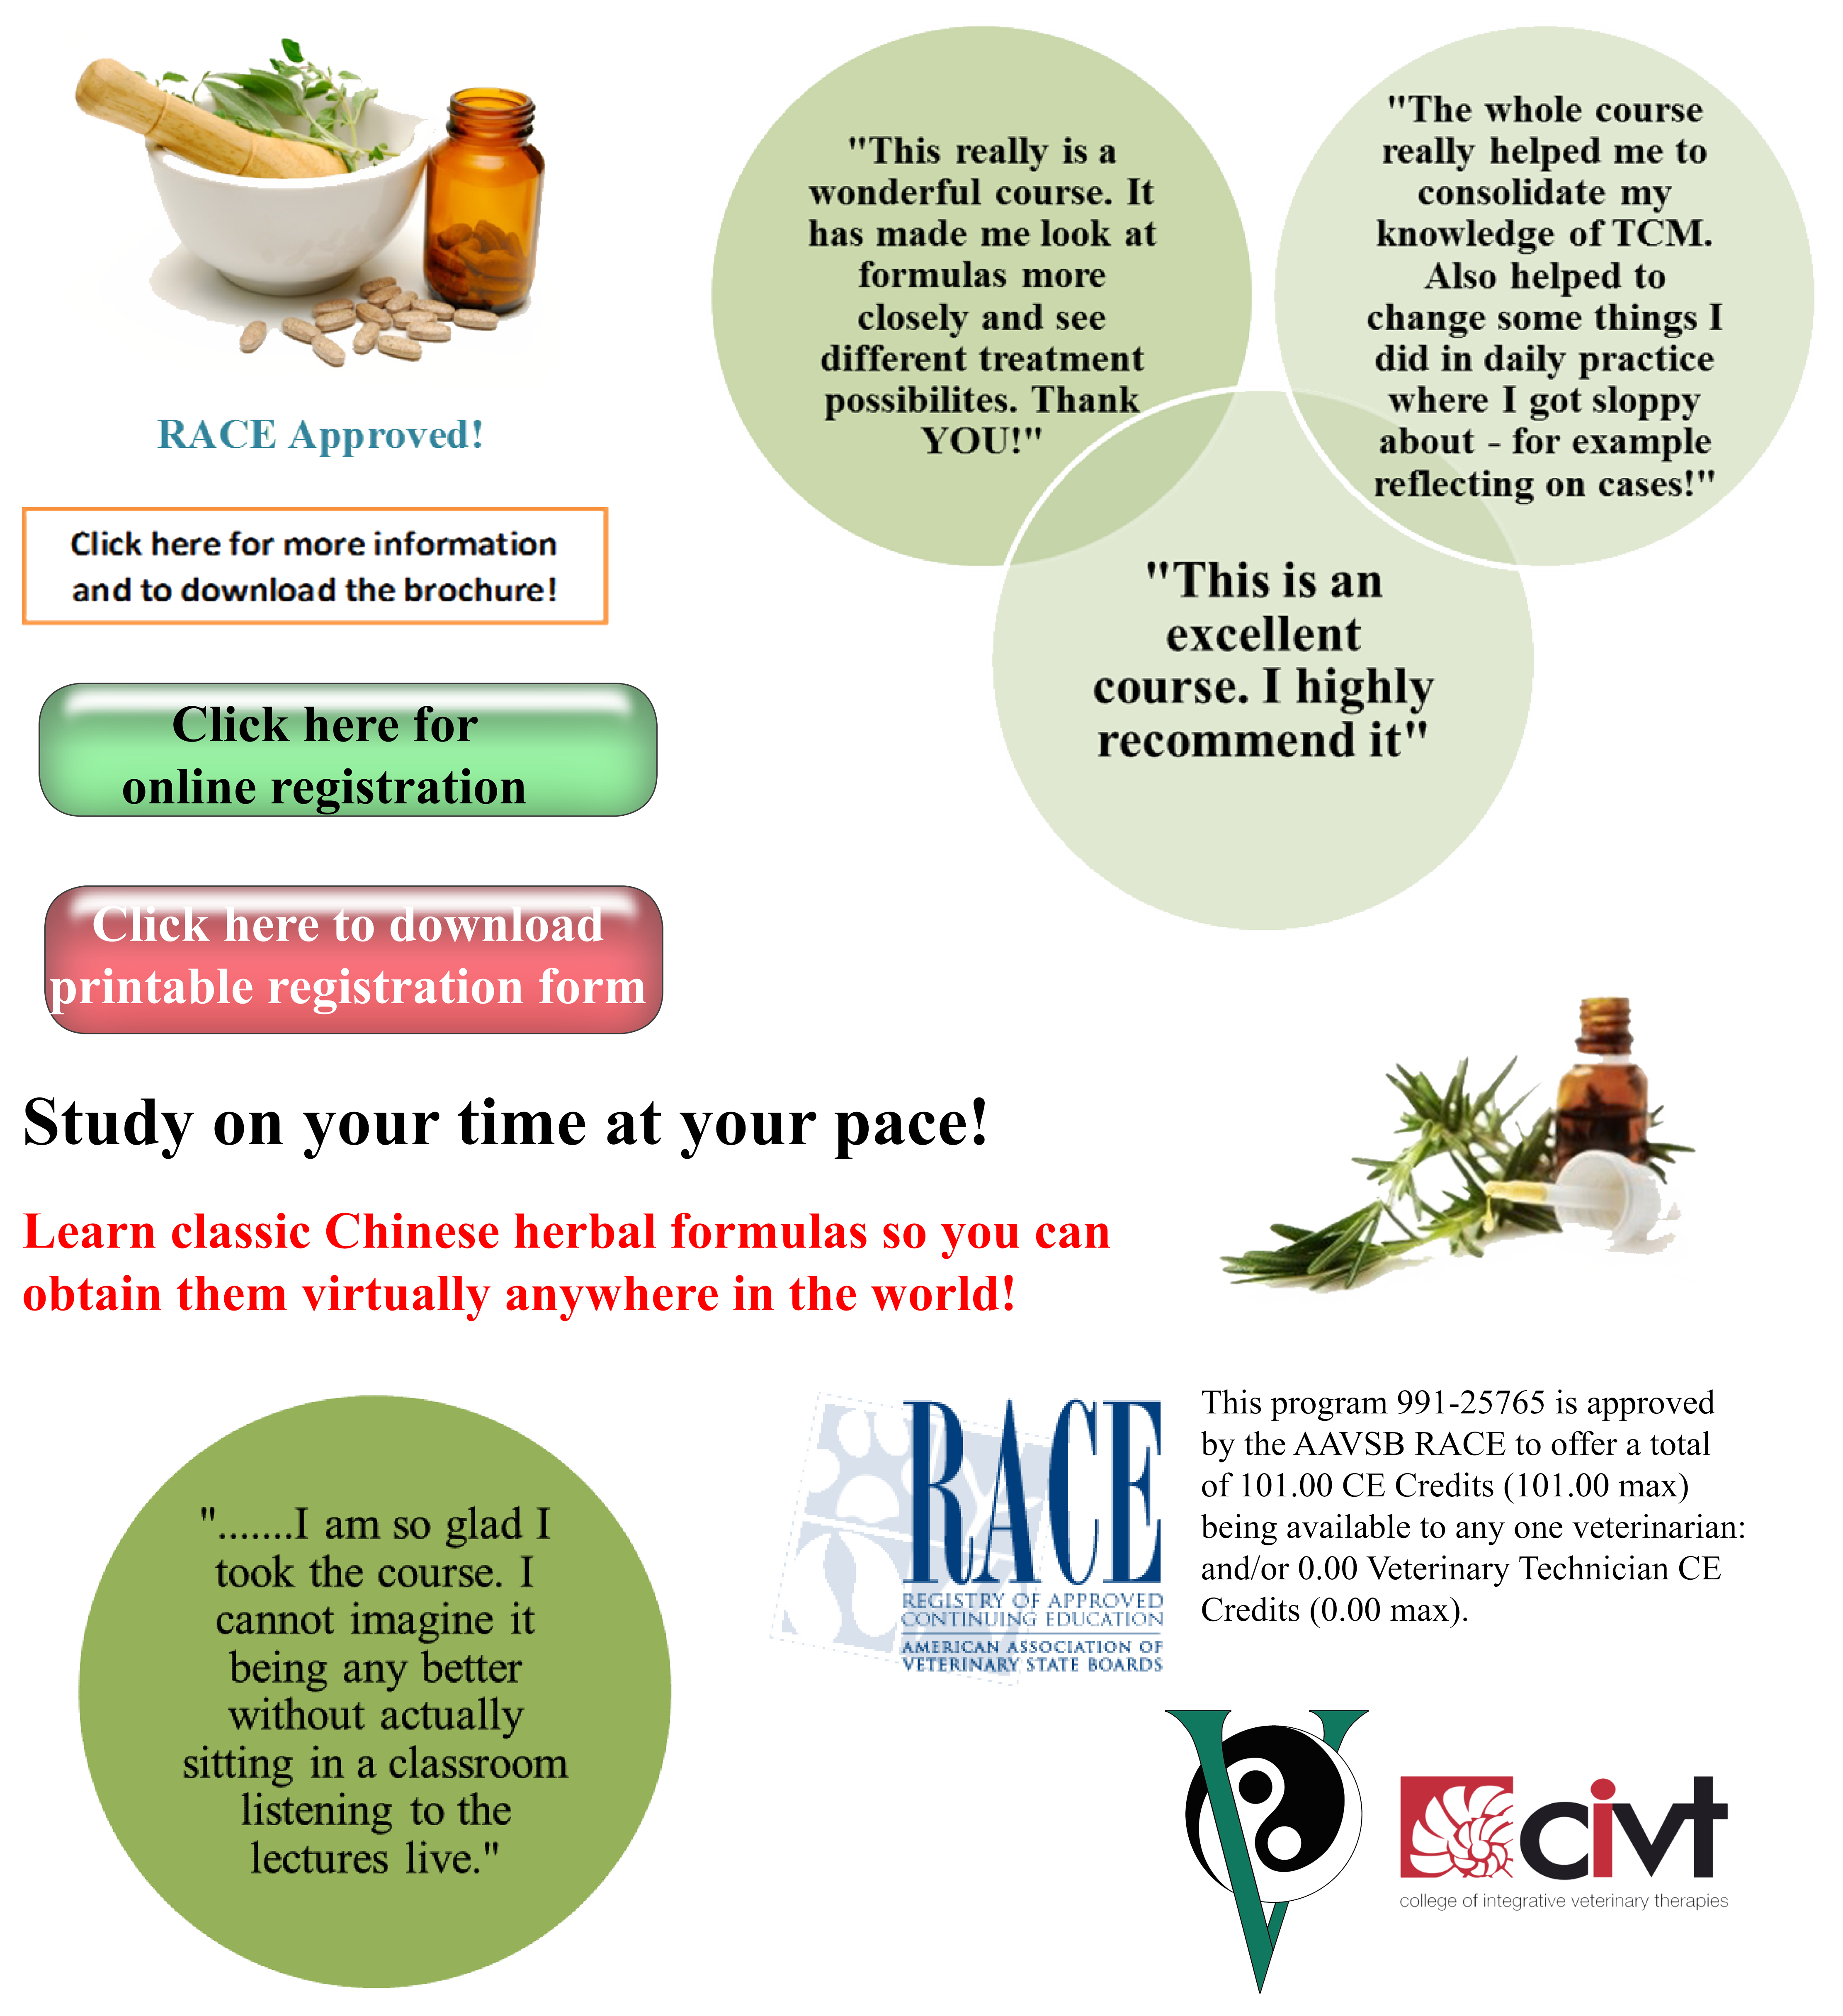 Ivas certification in veterinary chinese herbal medicine ivas ivas certification in veterinary chinese herbal medicine 1betcityfo Images